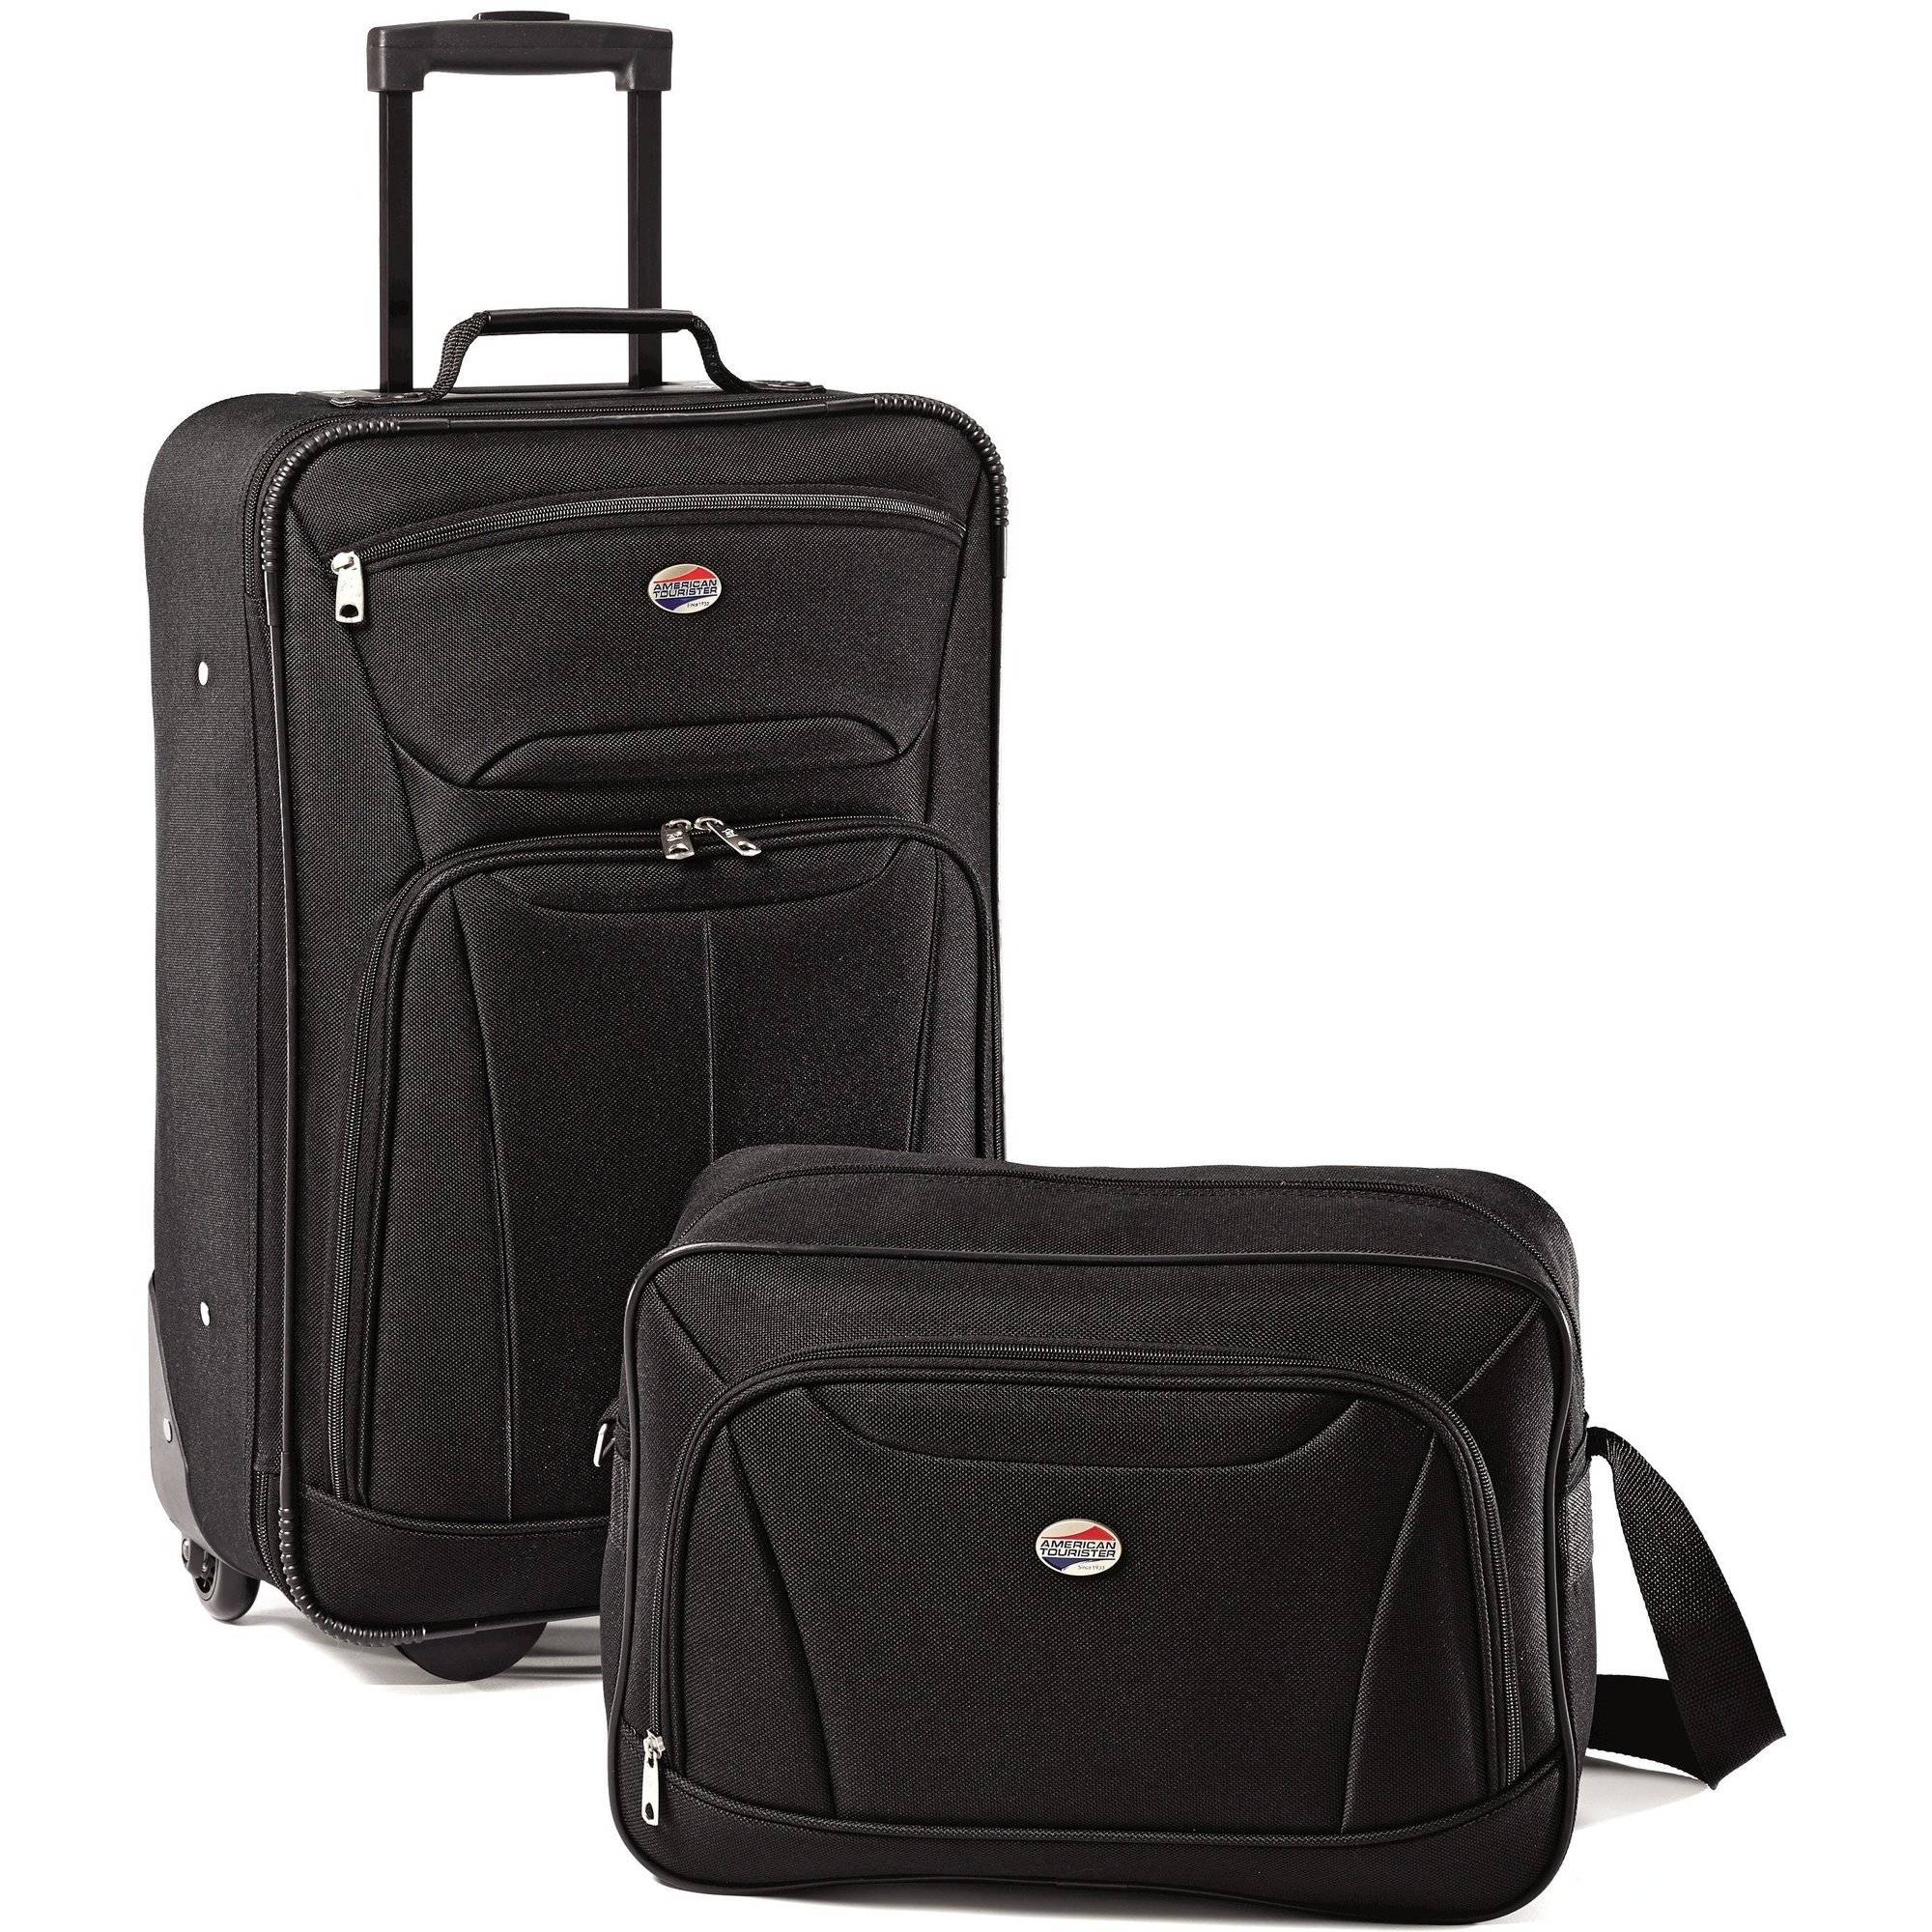 American Tourister Fieldbrook II 2-Piece Set